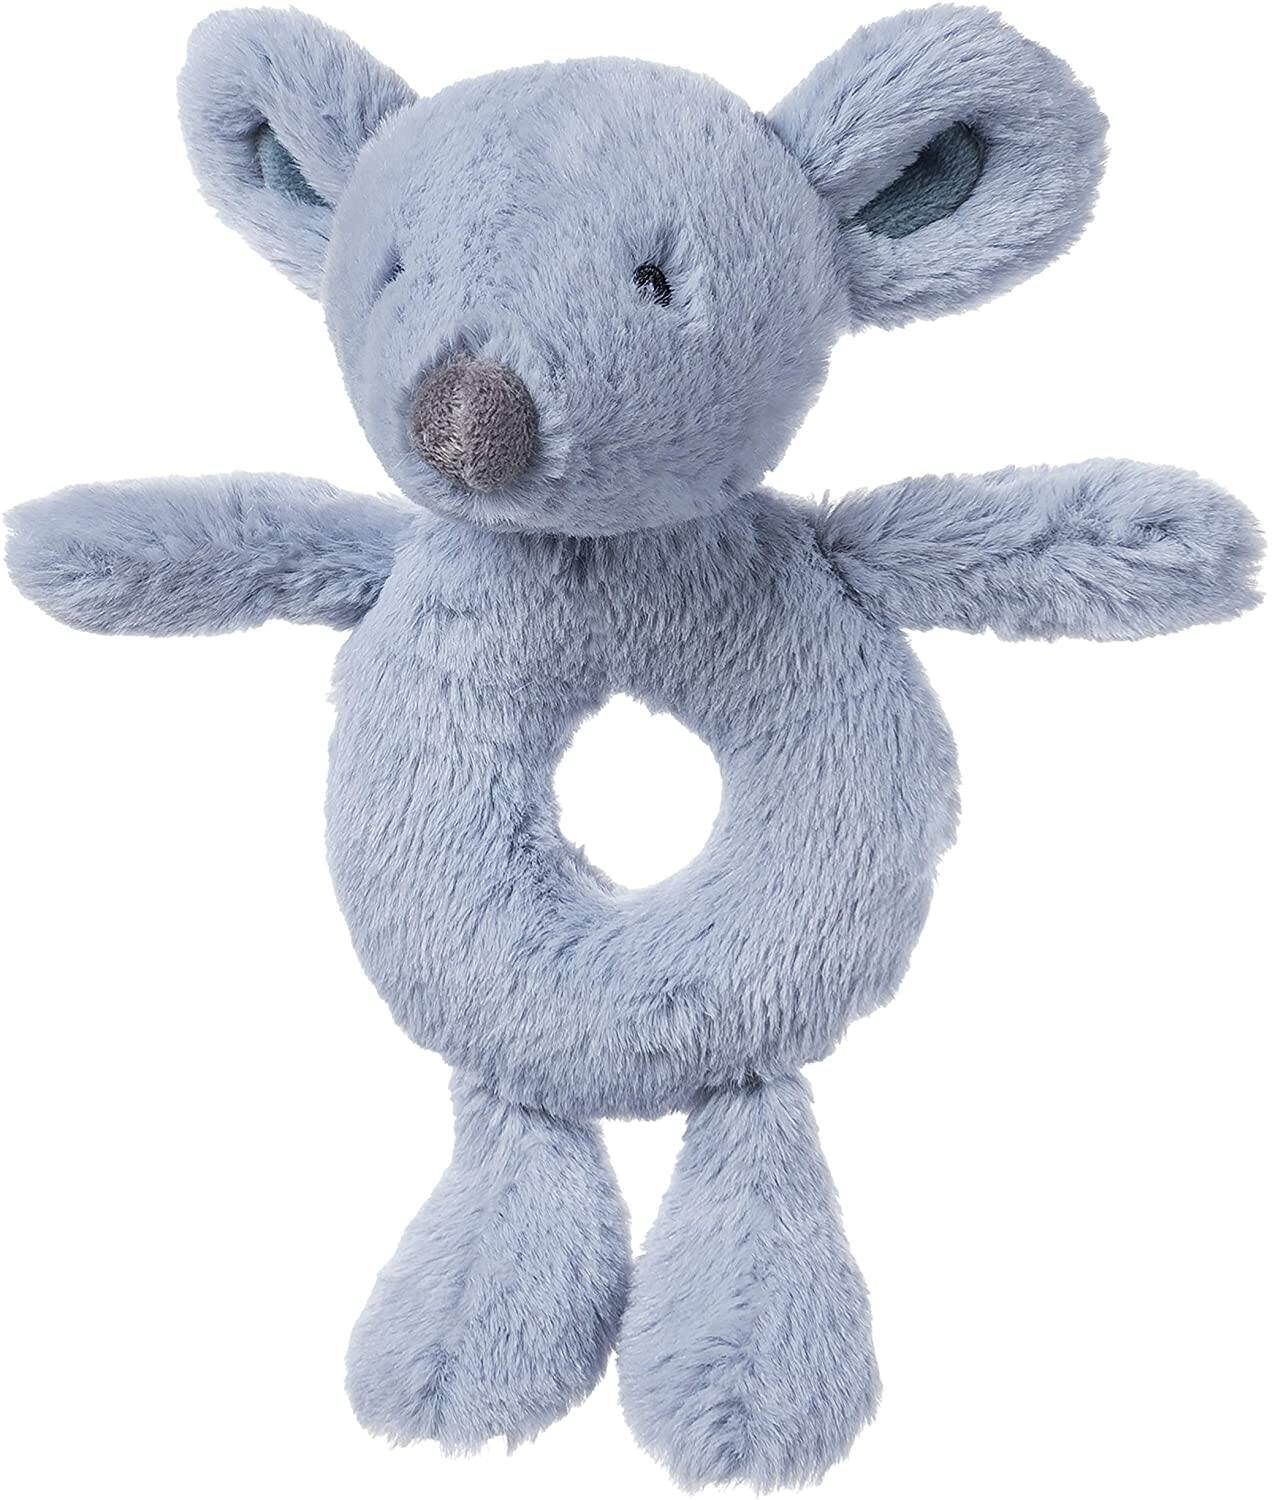 """7.5"""" Baby Gund Baby Toothpick Plush Spencer Mouse Rattle/ Stuffed Animal (Blue-Gray) $3.89 + Free Shipping w/ Prime or on $25+"""